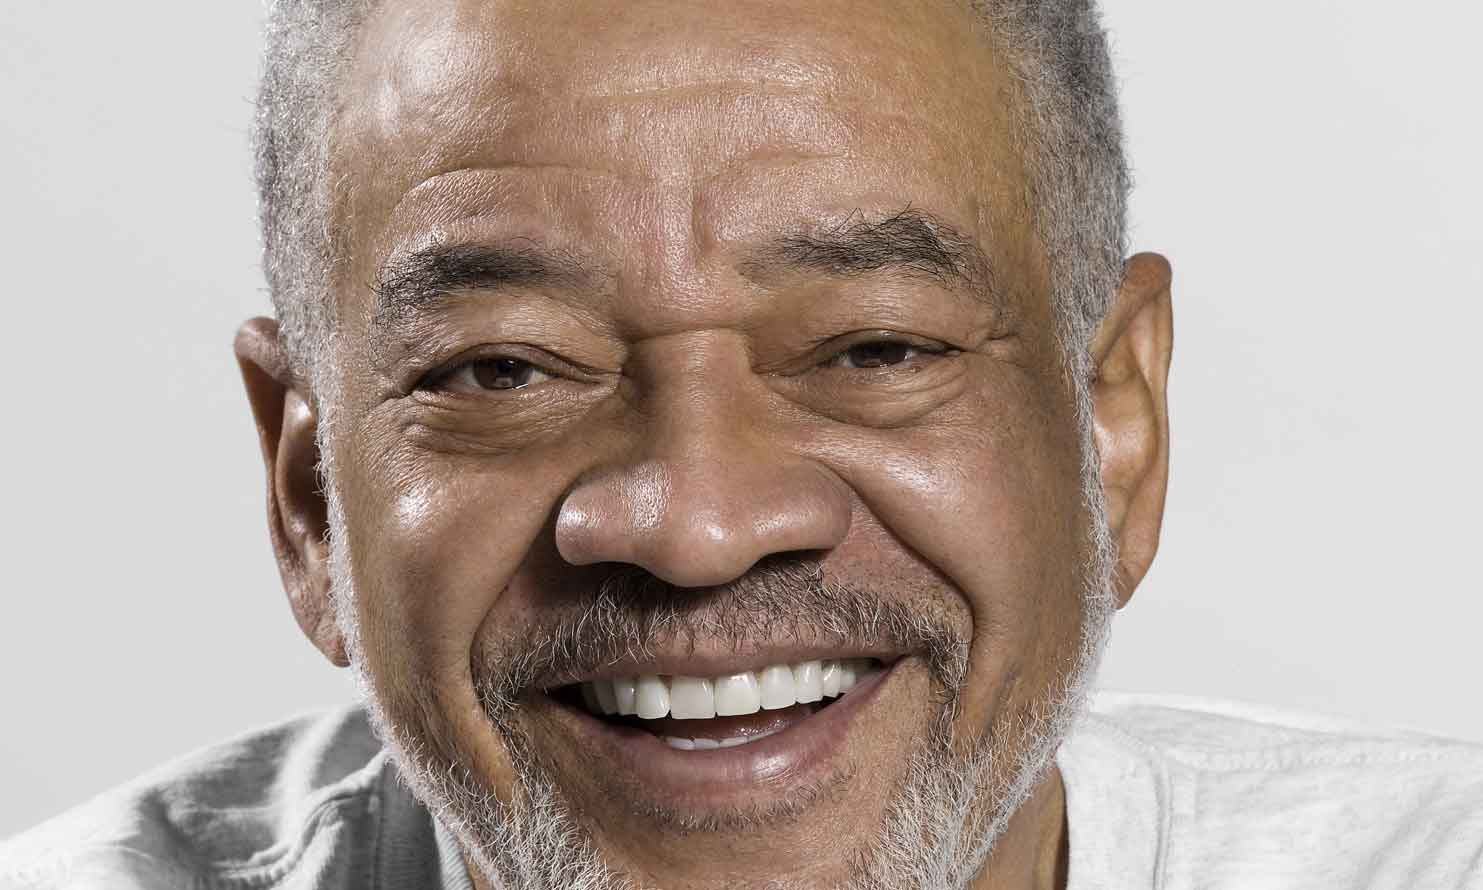 http://preachjacobs.files.wordpress.com/2009/09/430-eventpage-bill-withers_500.jpg